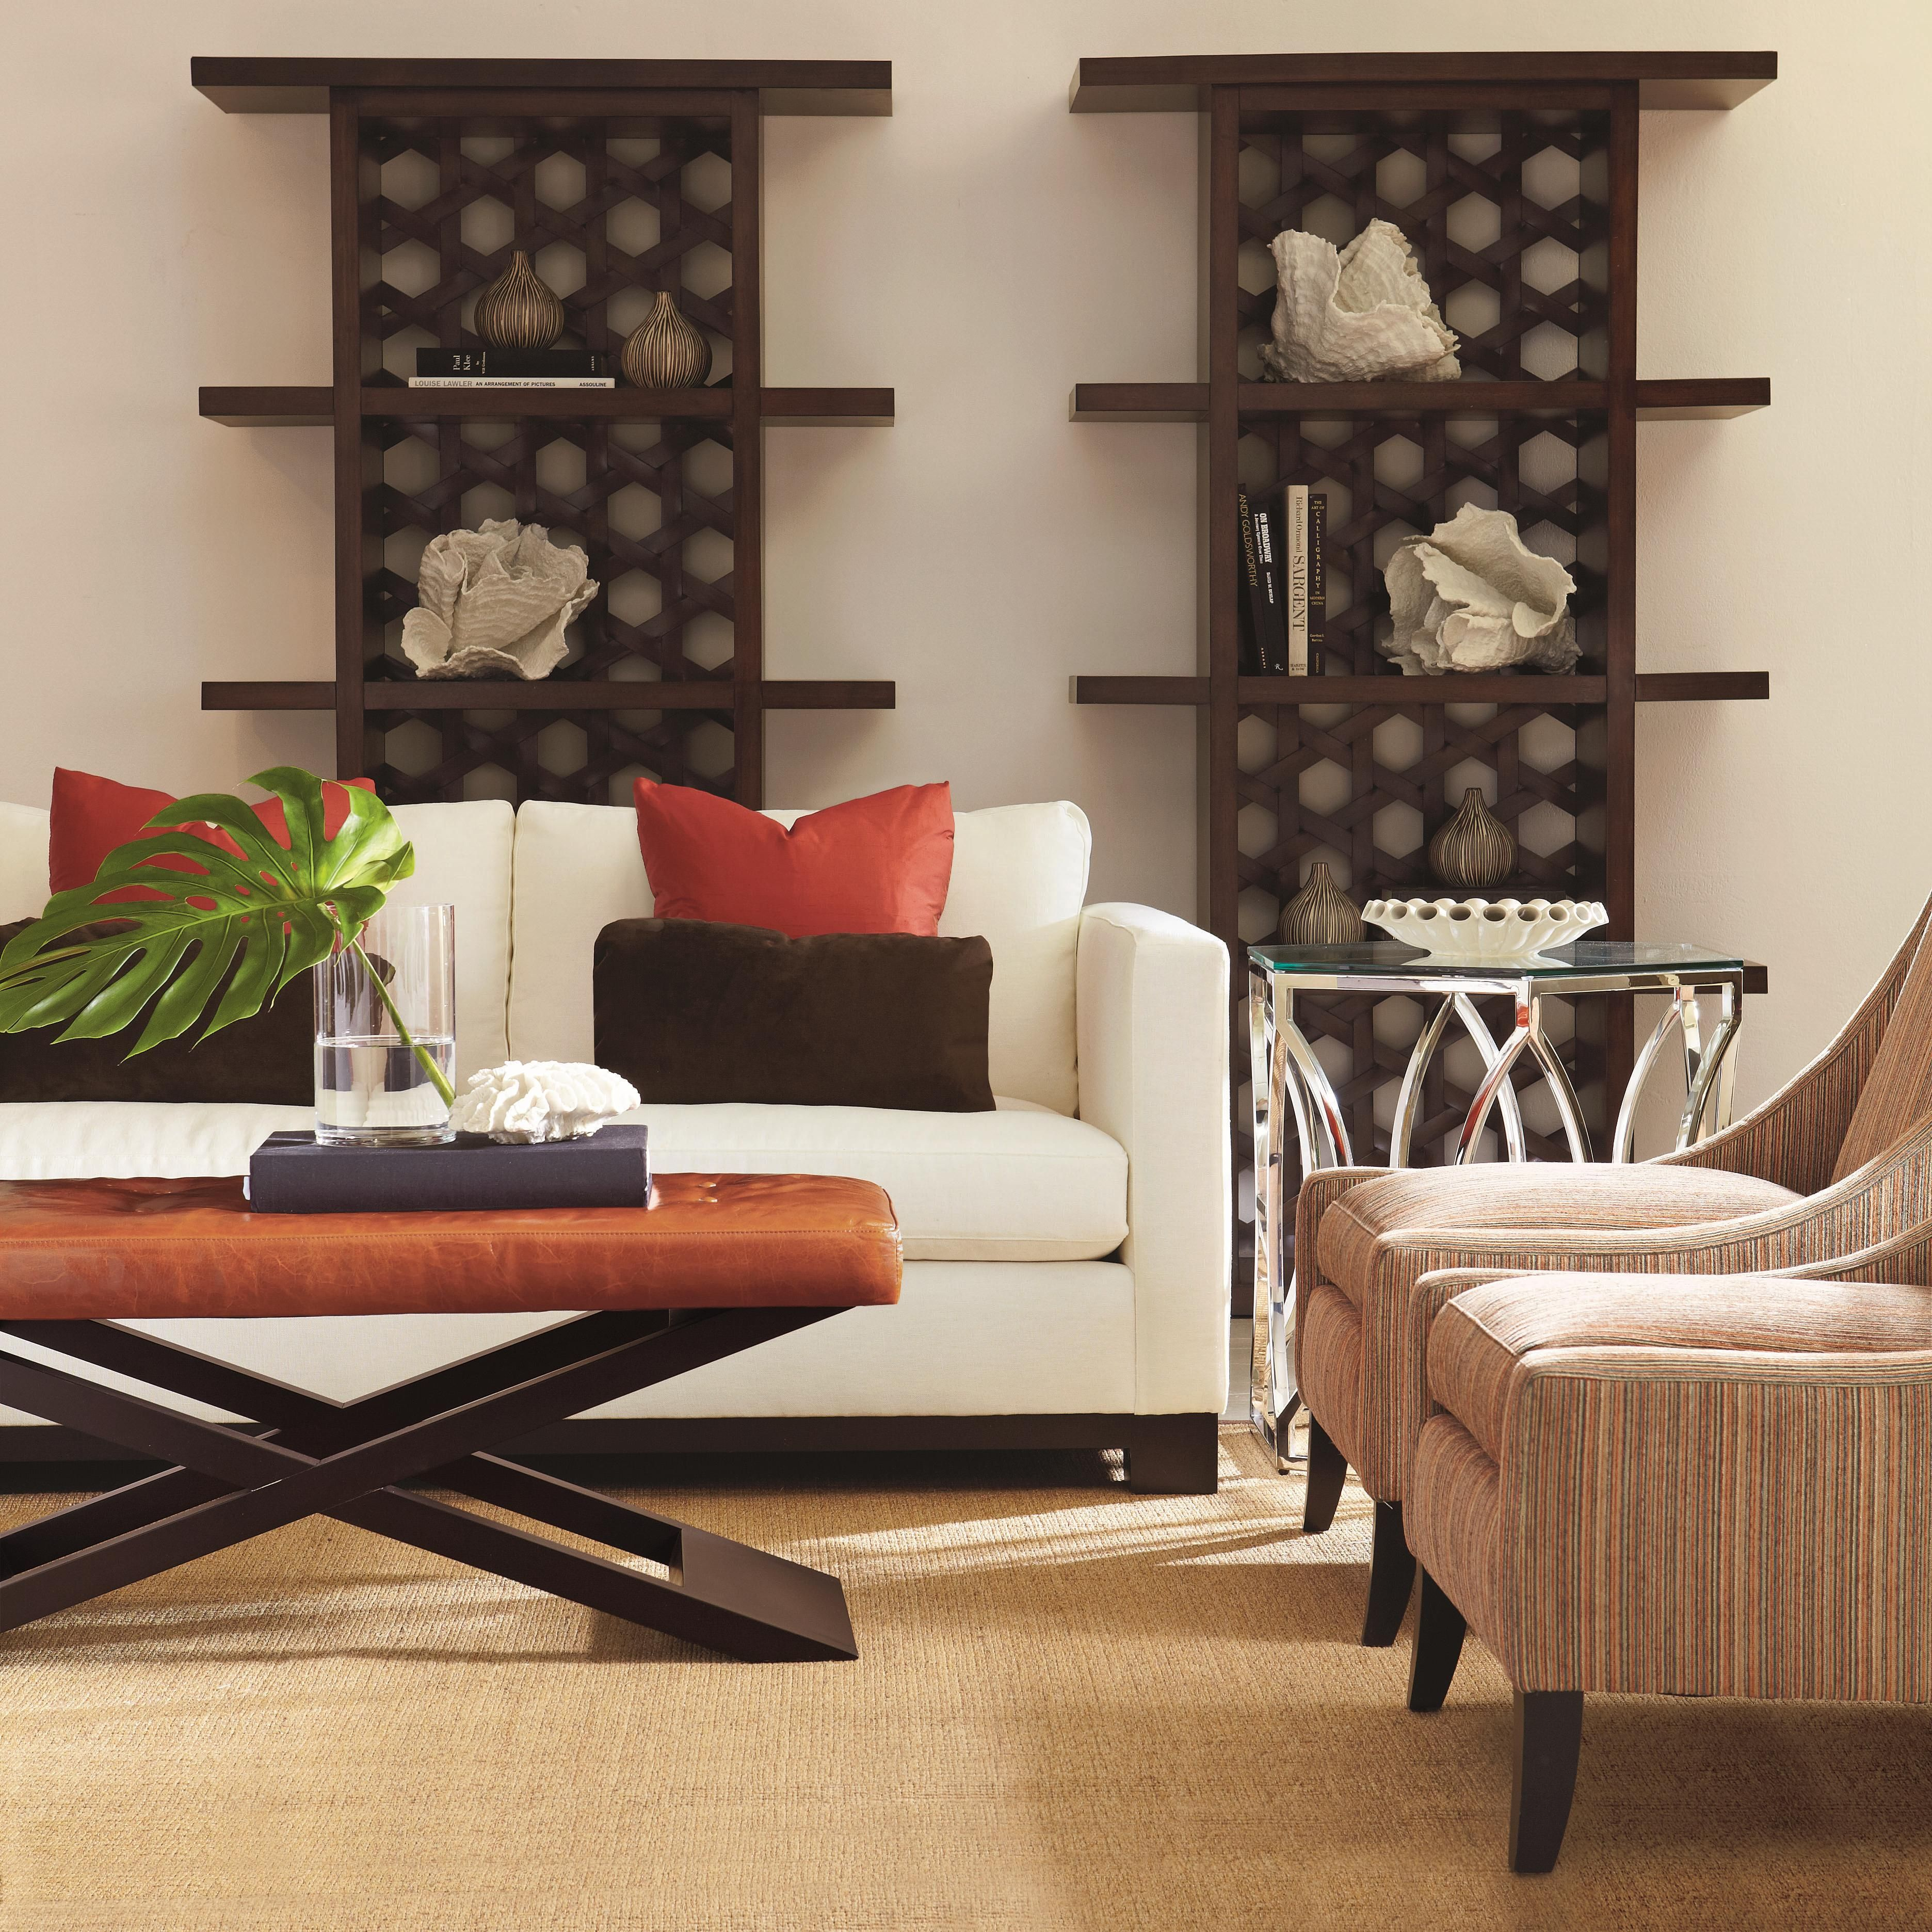 Lanai Modern Styled Sofa with Slight Asian Influence in Standard